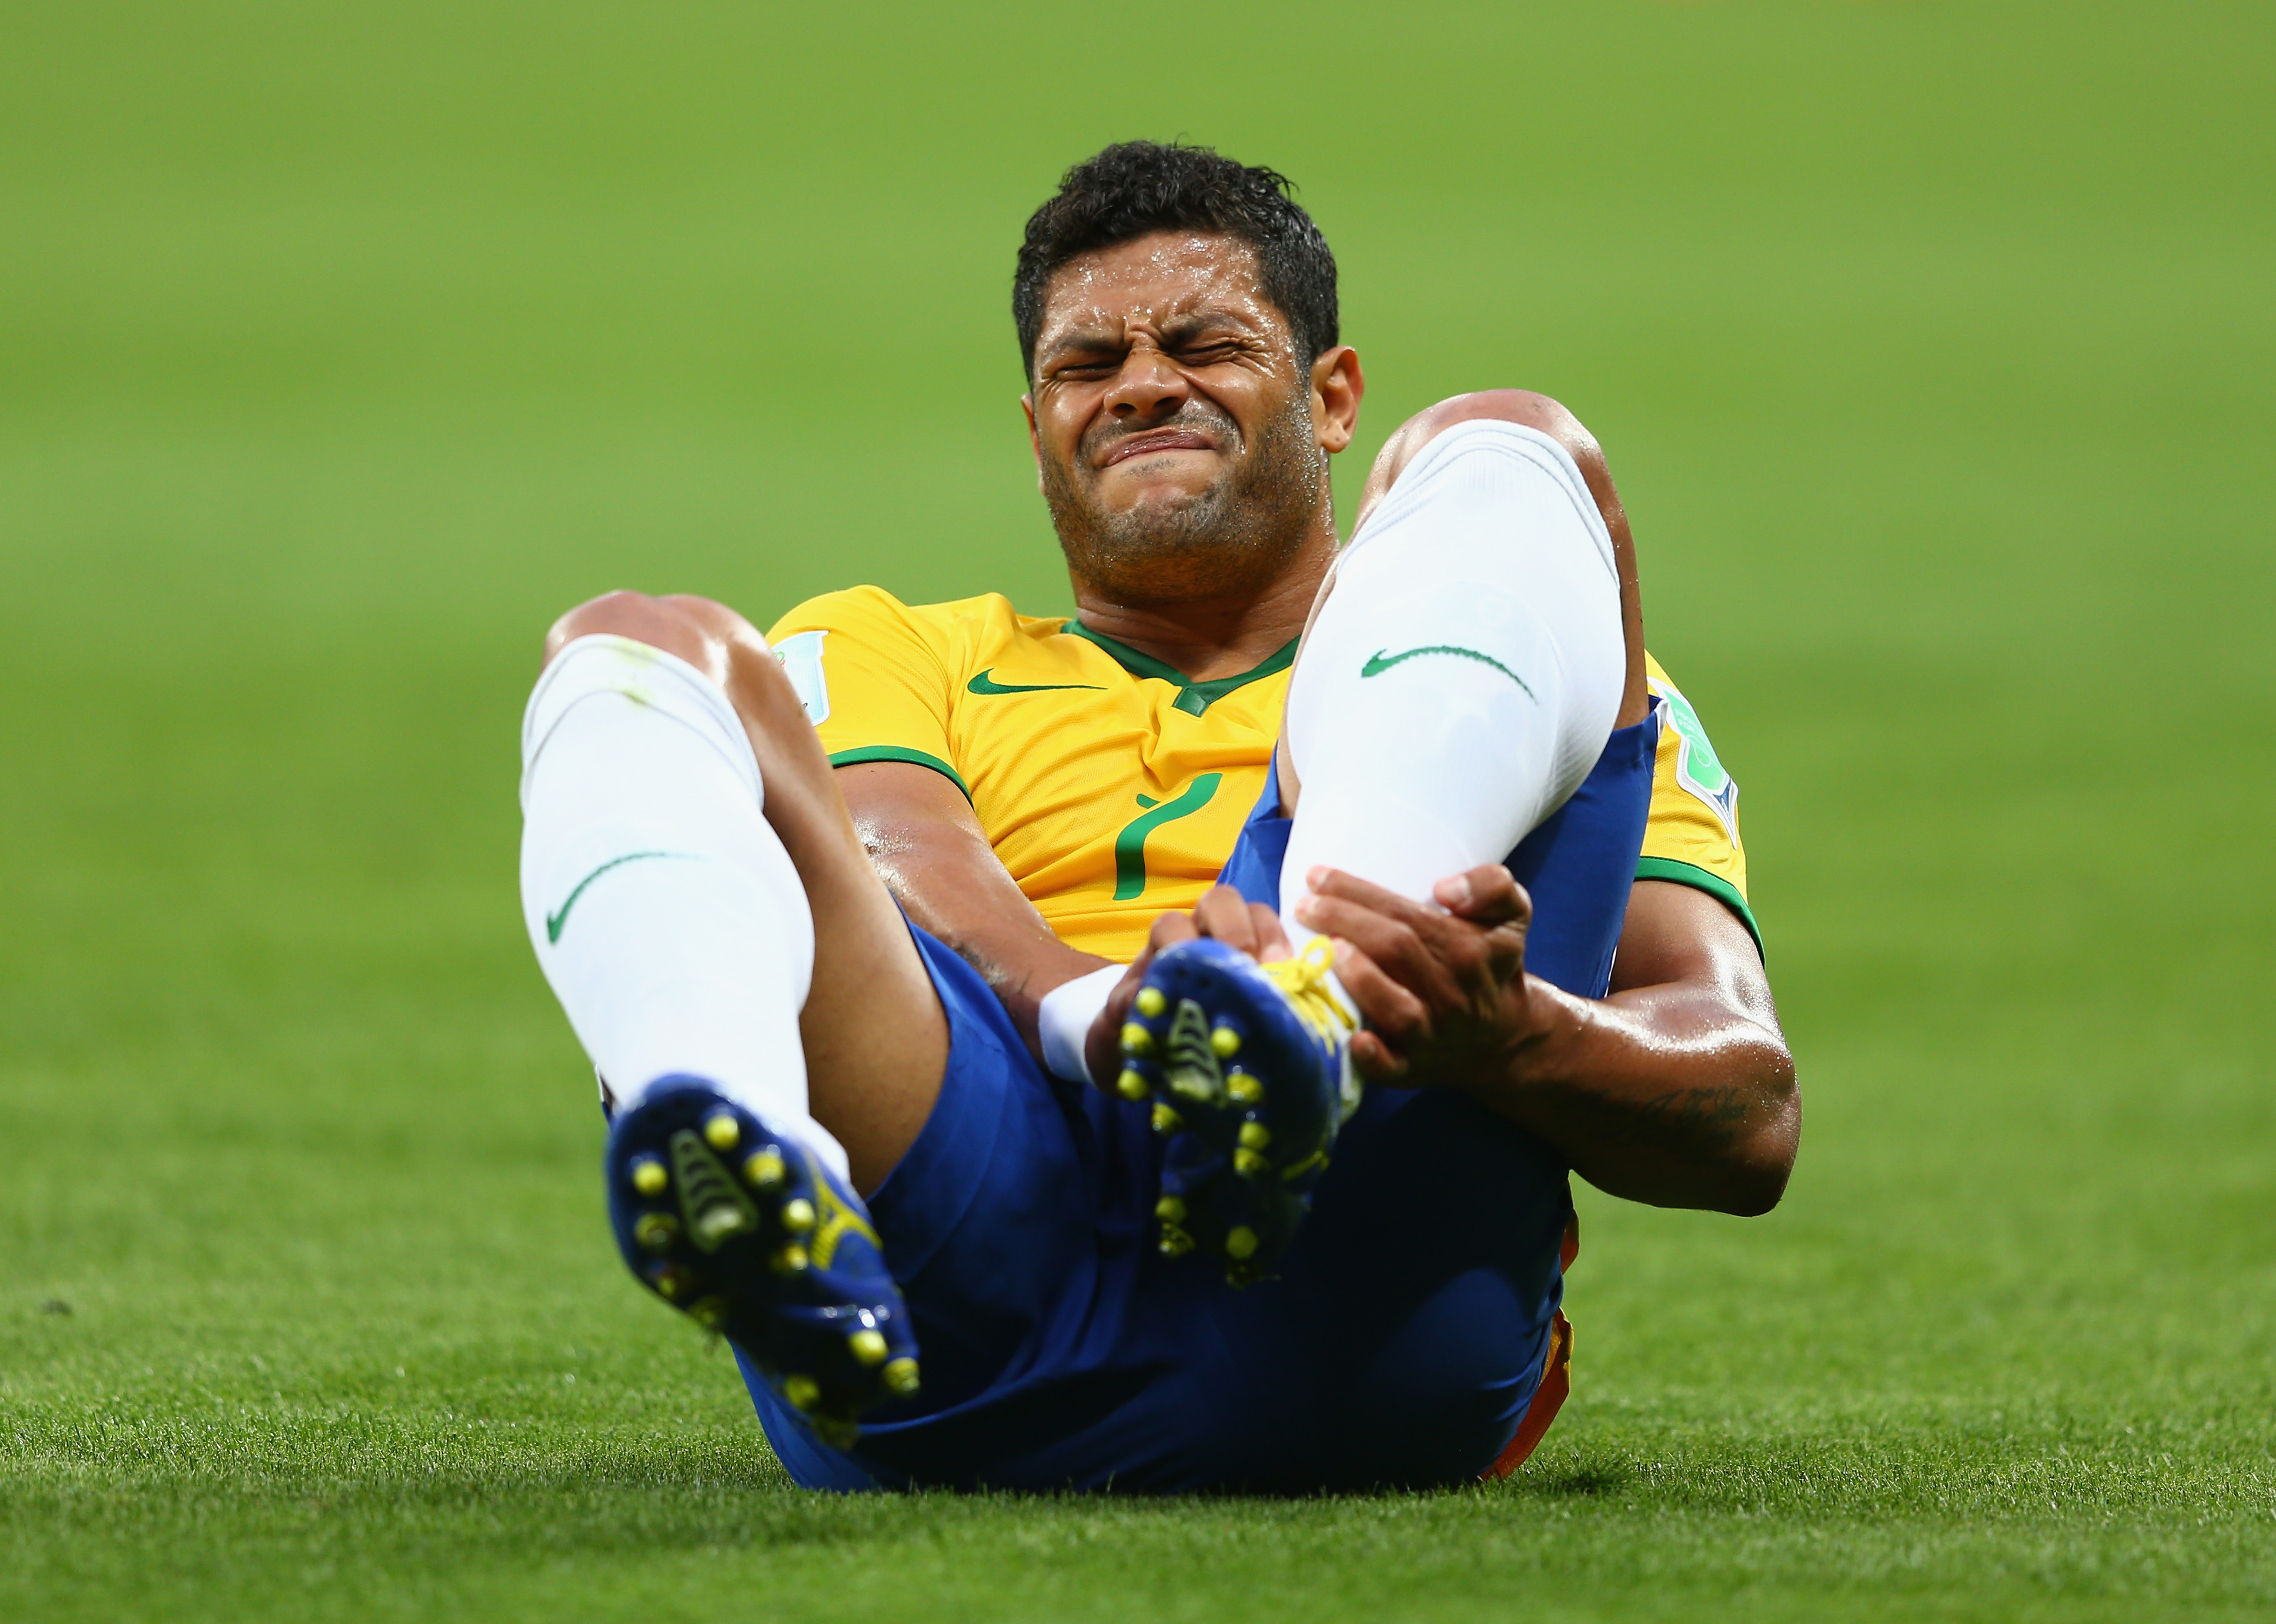 BELO HORIZONTE, BRAZIL - JULY 08:  Hulk of Brazil reacts during the 2014 FIFA World Cup Brazil Semi Final match between Brazi